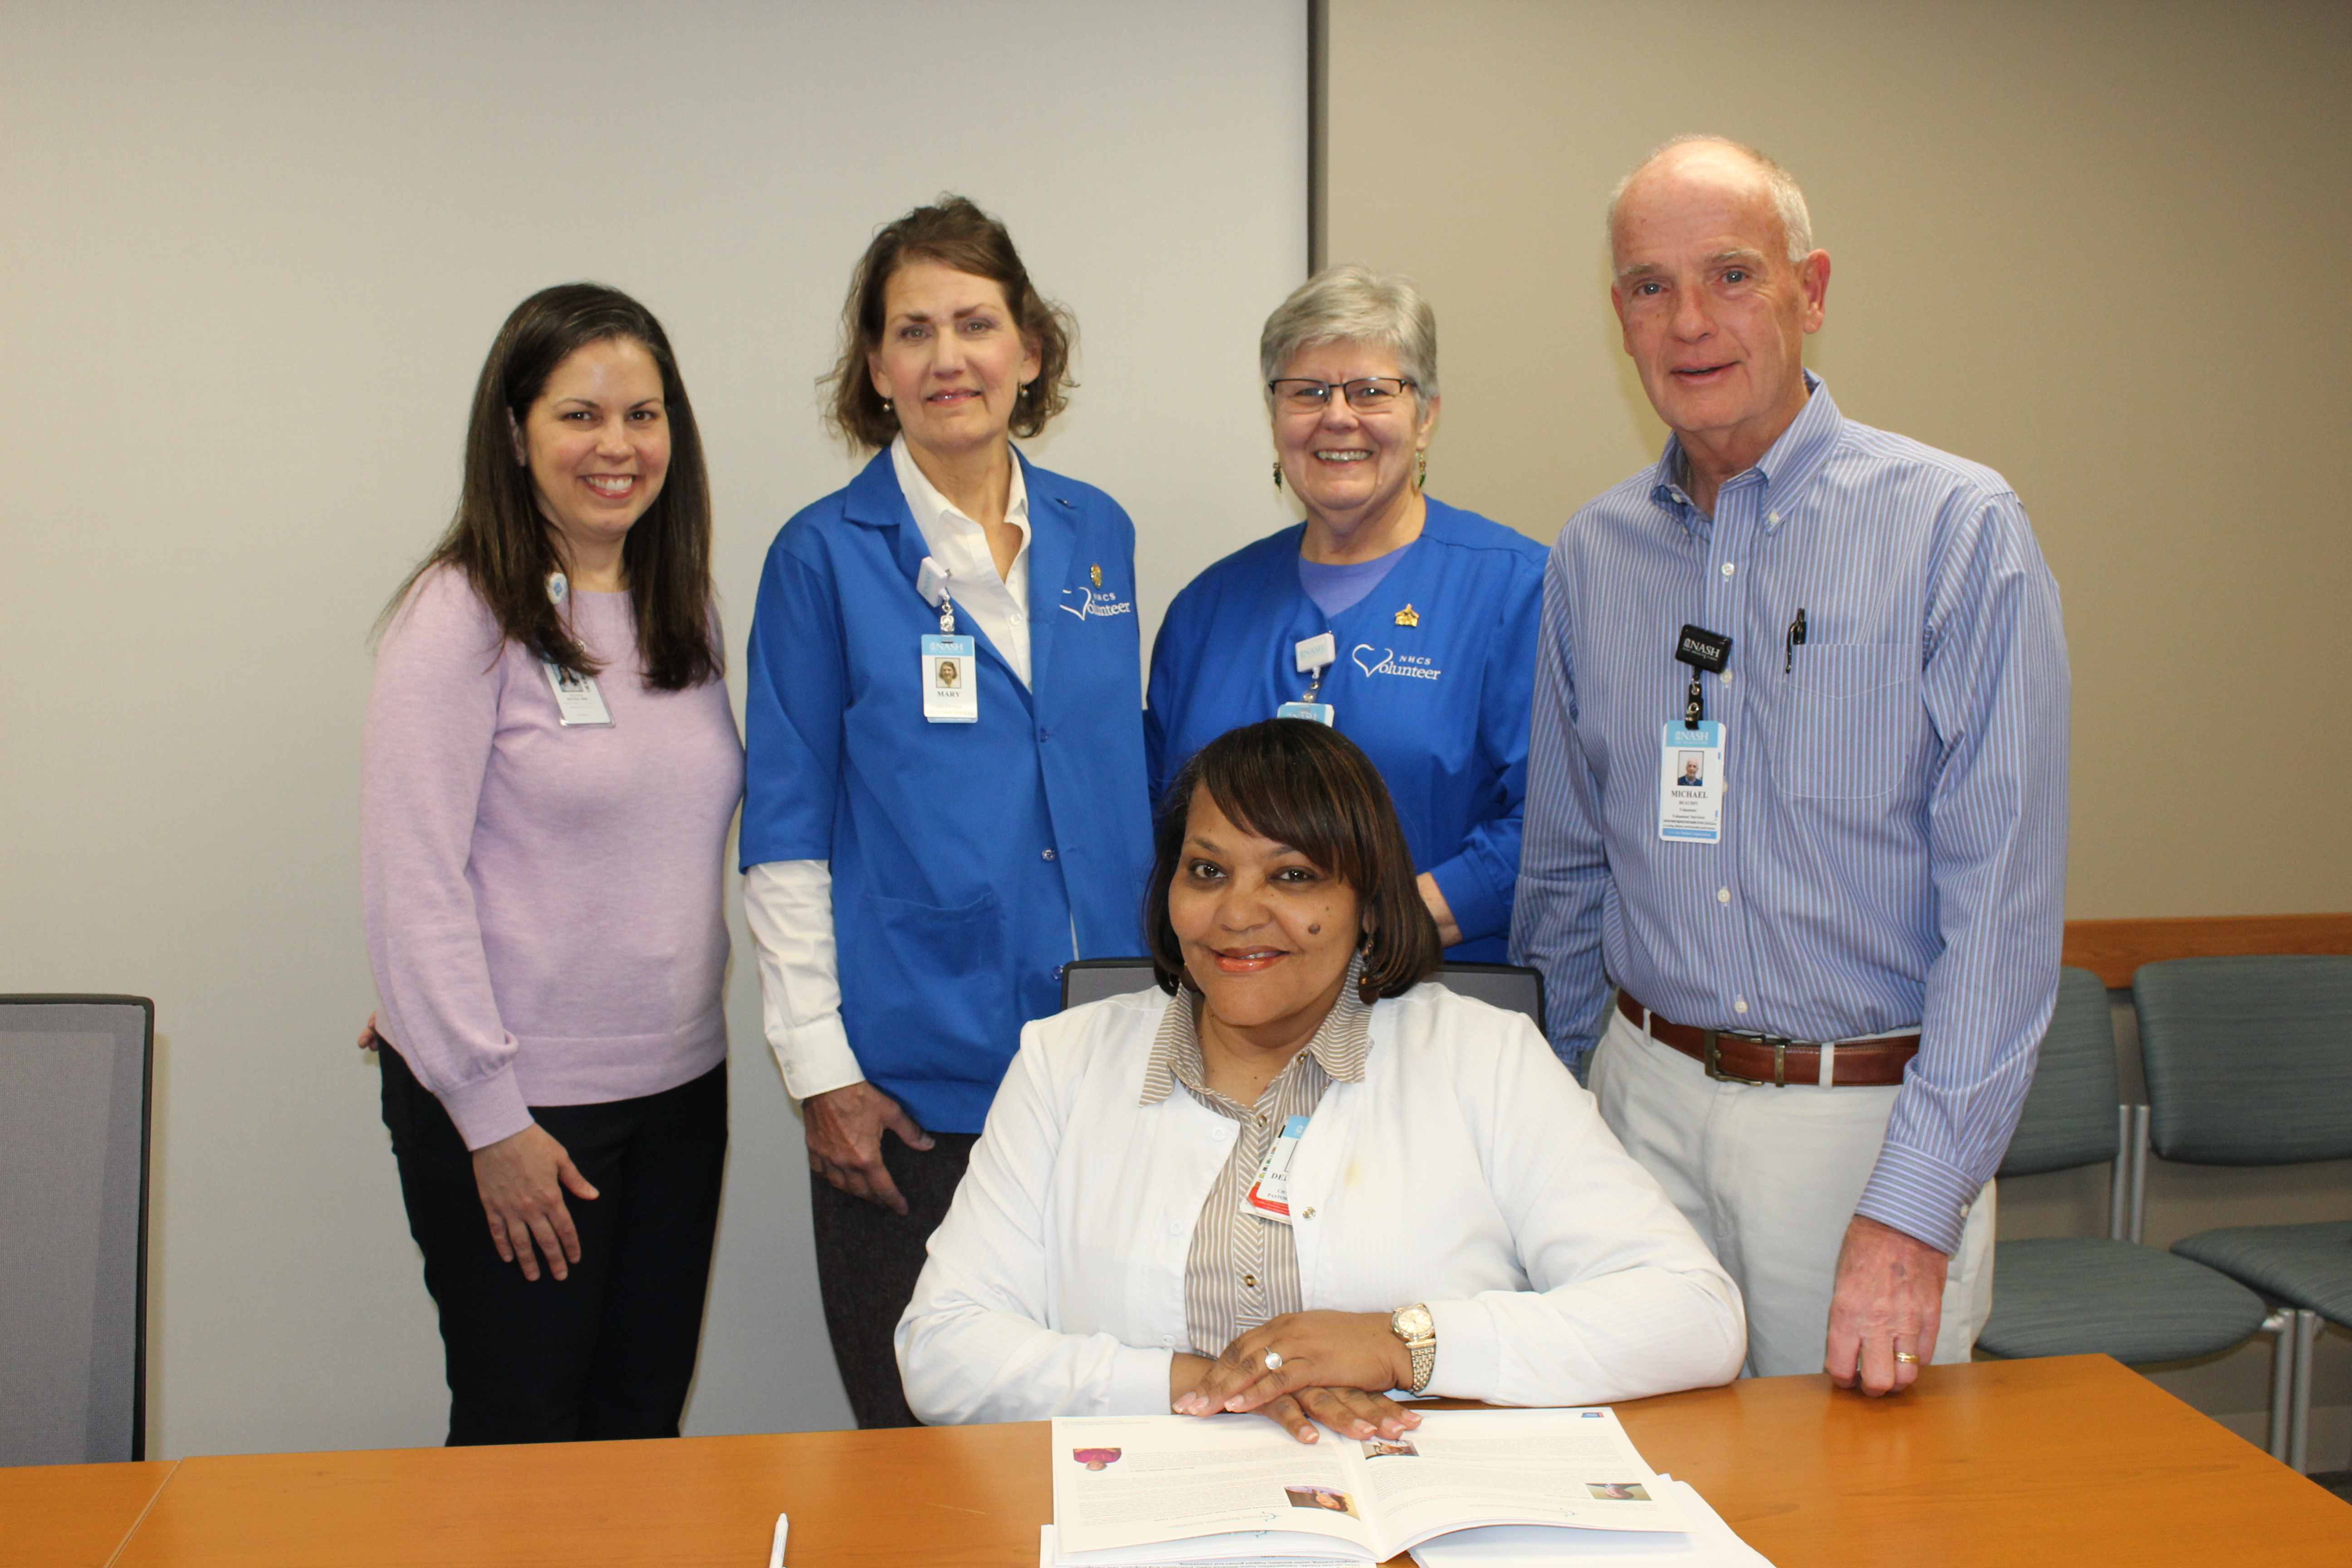 Delphine Wiggins shares information with Cancer Lay Navigation team